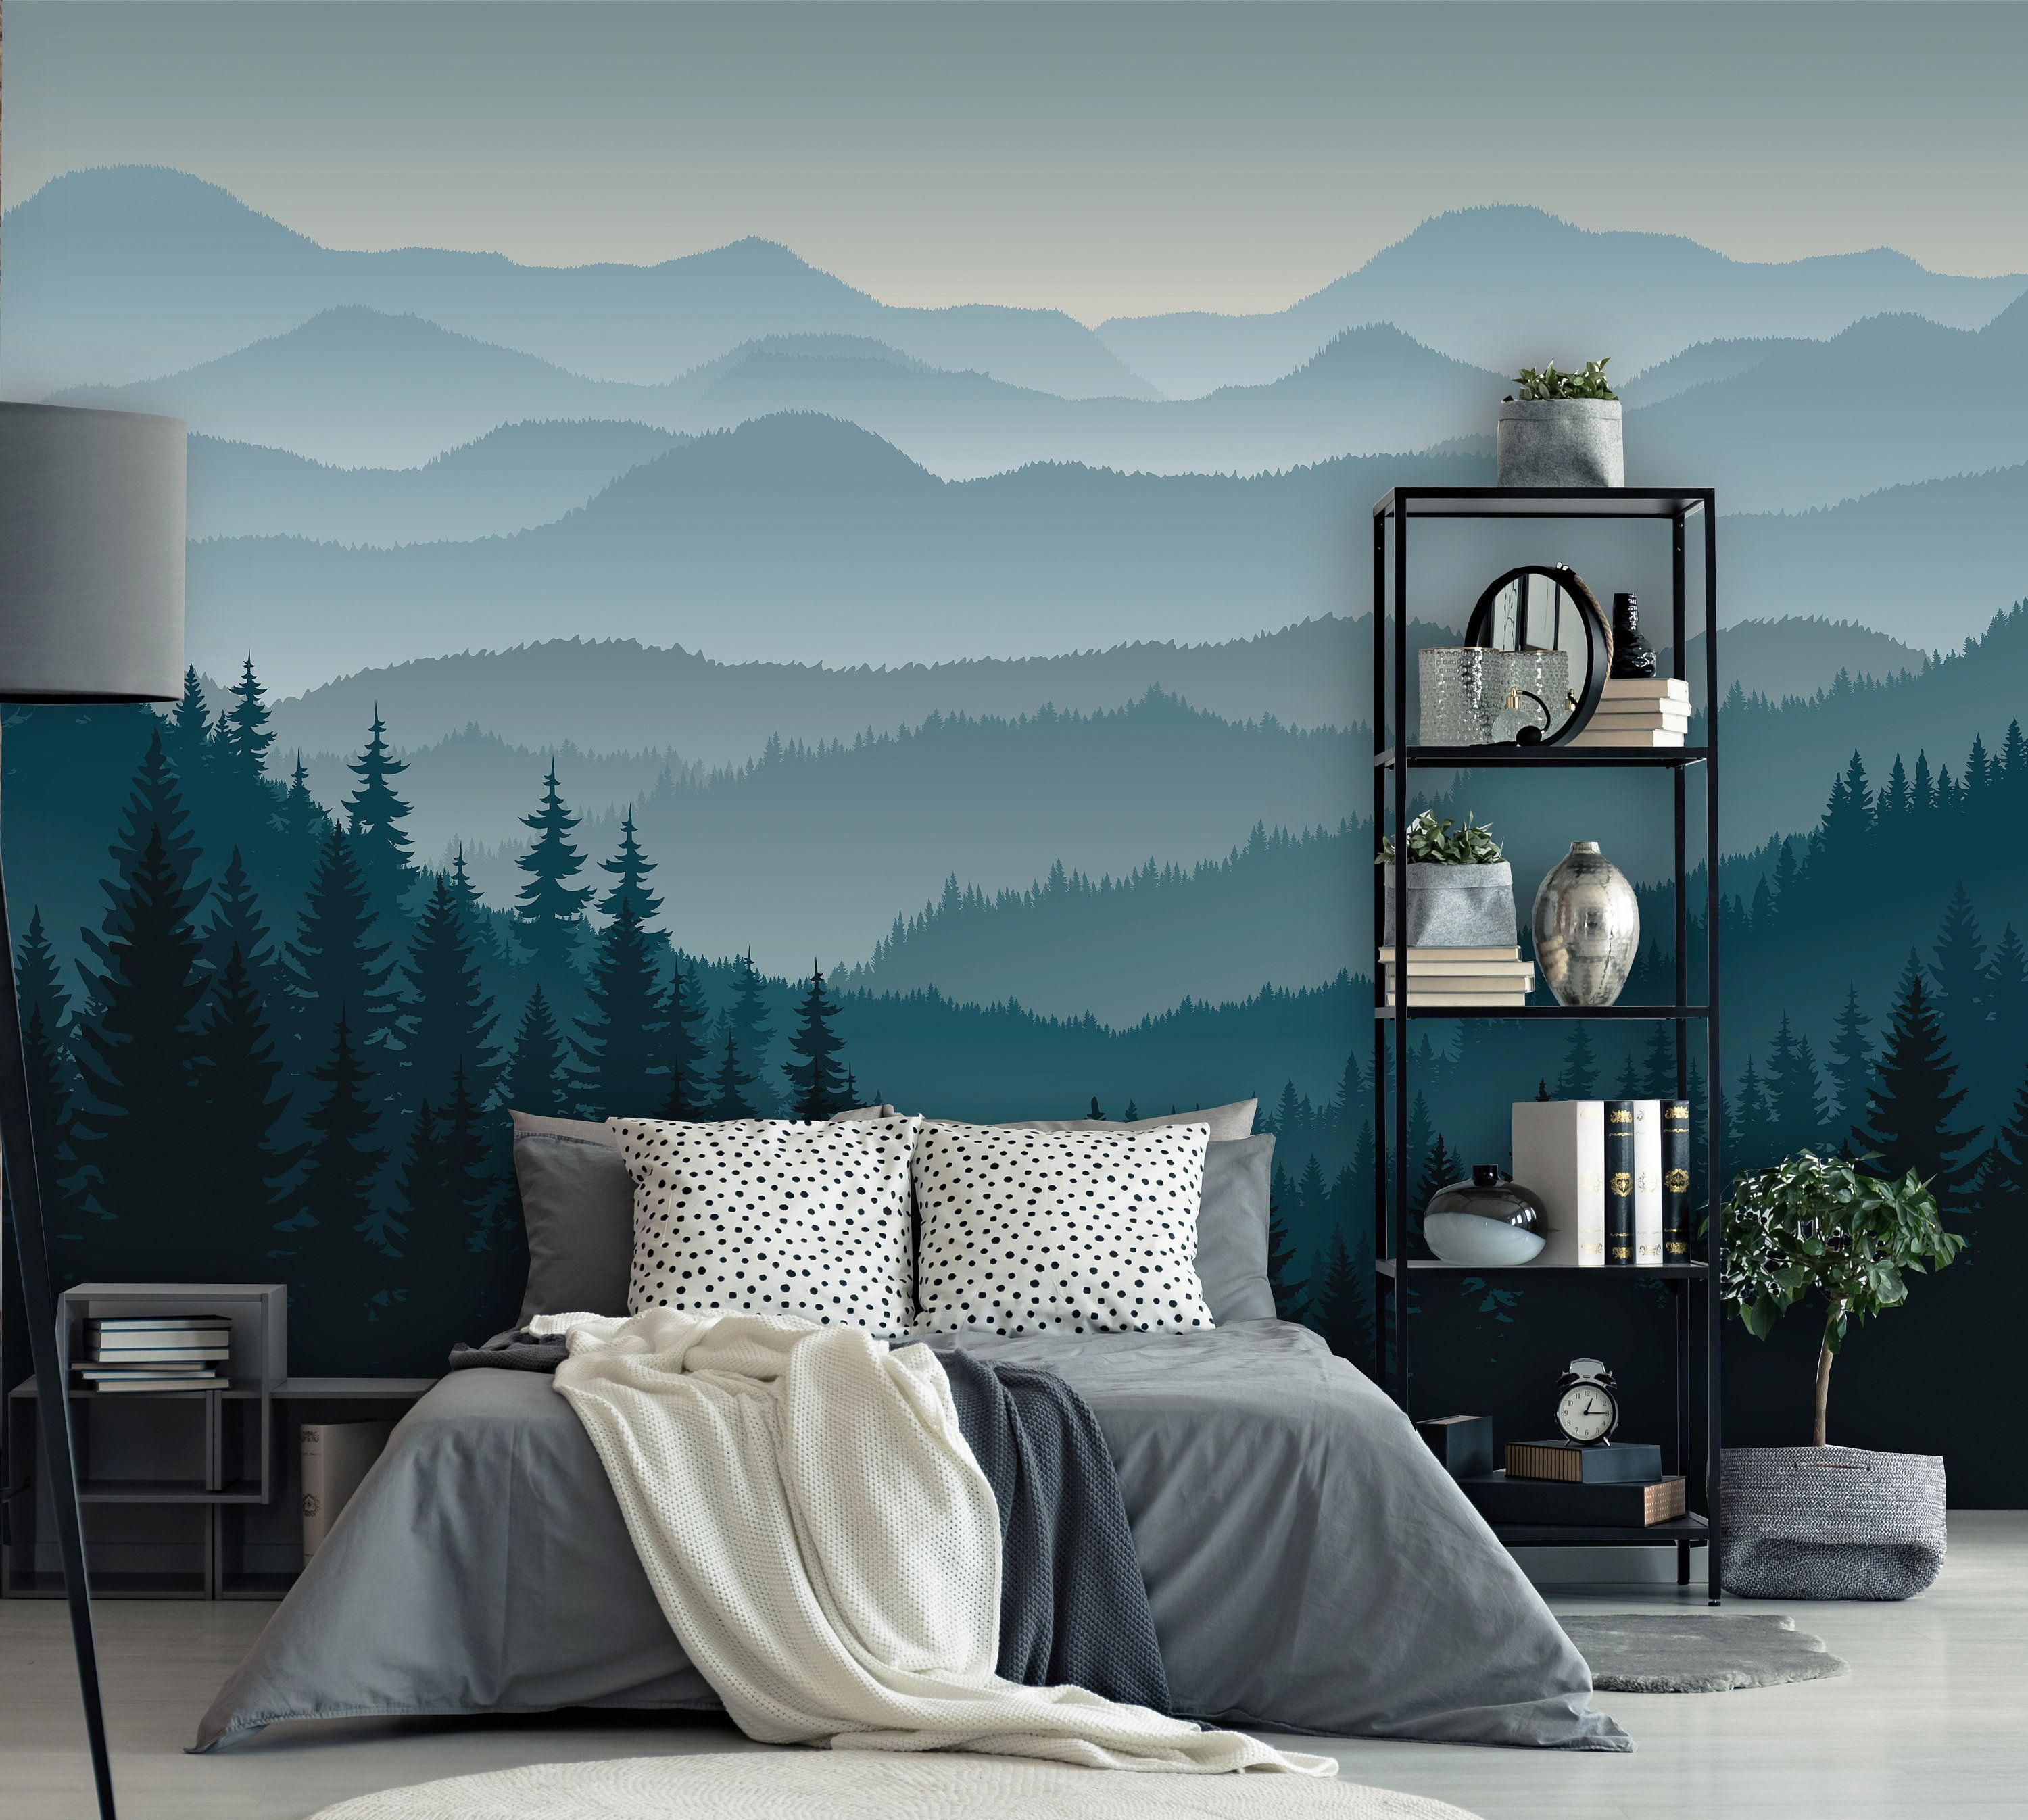 Removable Peel N Stick Wallpaper Self Adhesive Wall Etsy Bedroom Murals Wall Decor Bedroom Mountain Mural